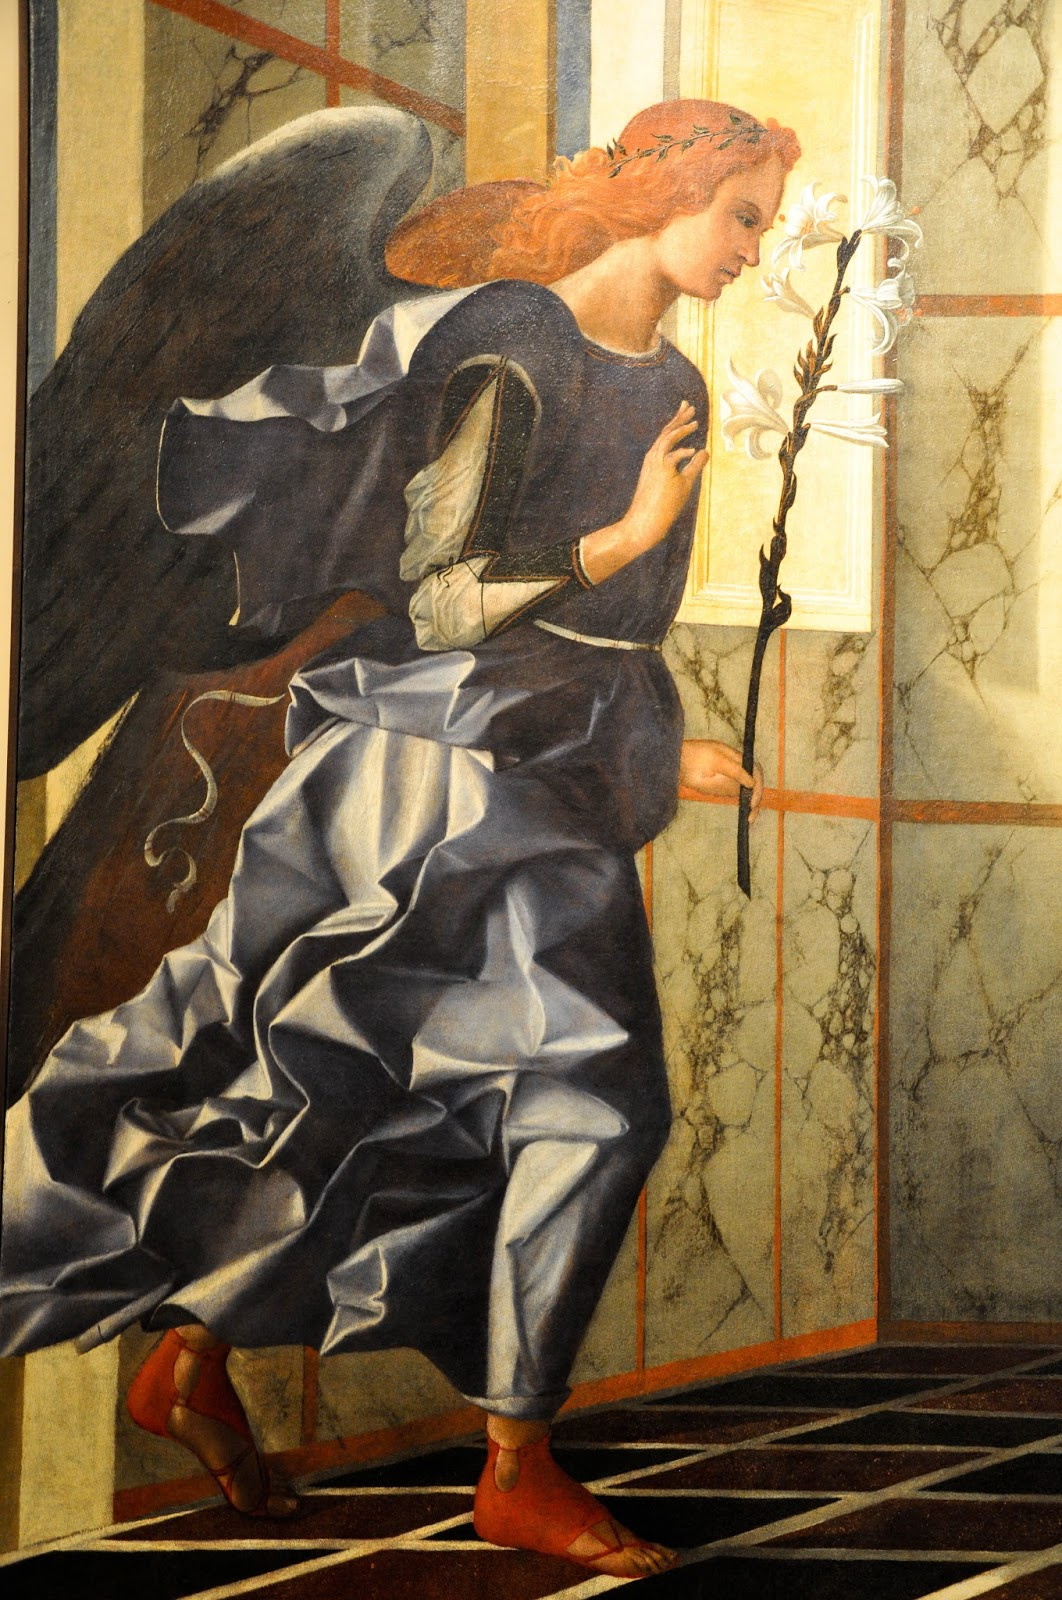 A close-up of the Angel of Annunciation, painting by Giovanni Bellini, Gallerie dell'Accademia in Venice